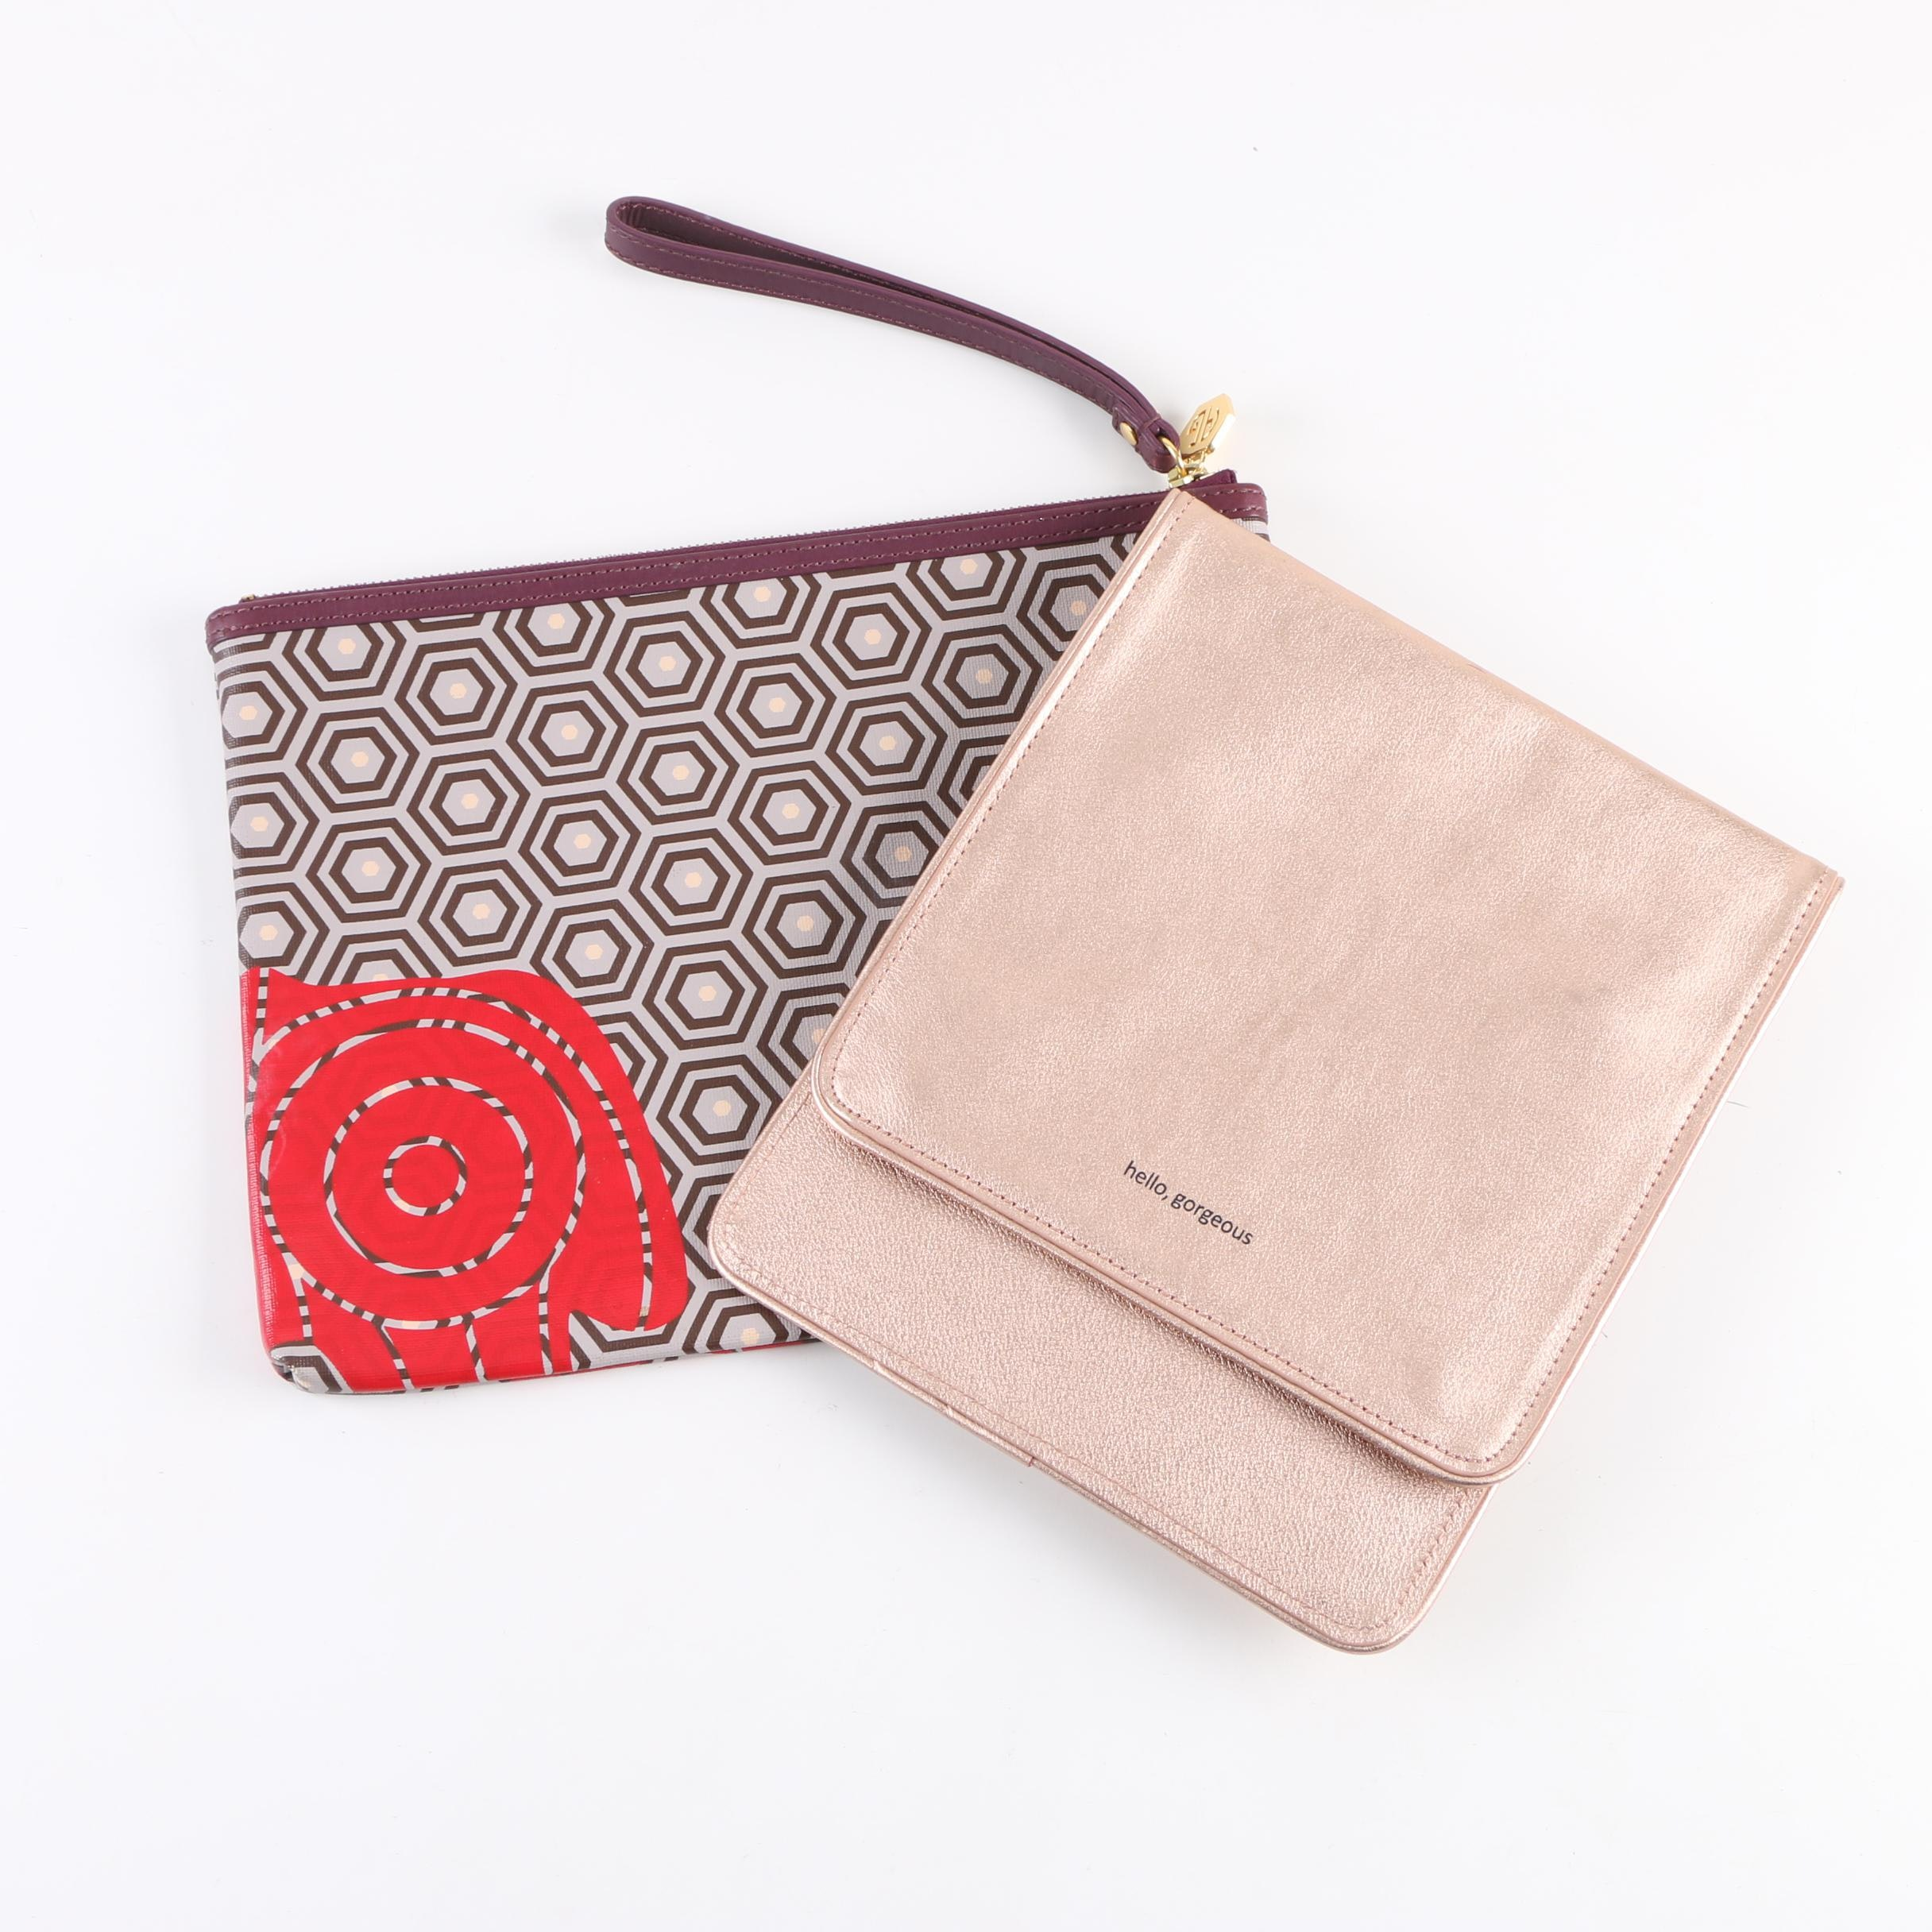 Jonathan Adler and Anthropologie Leather Clutches